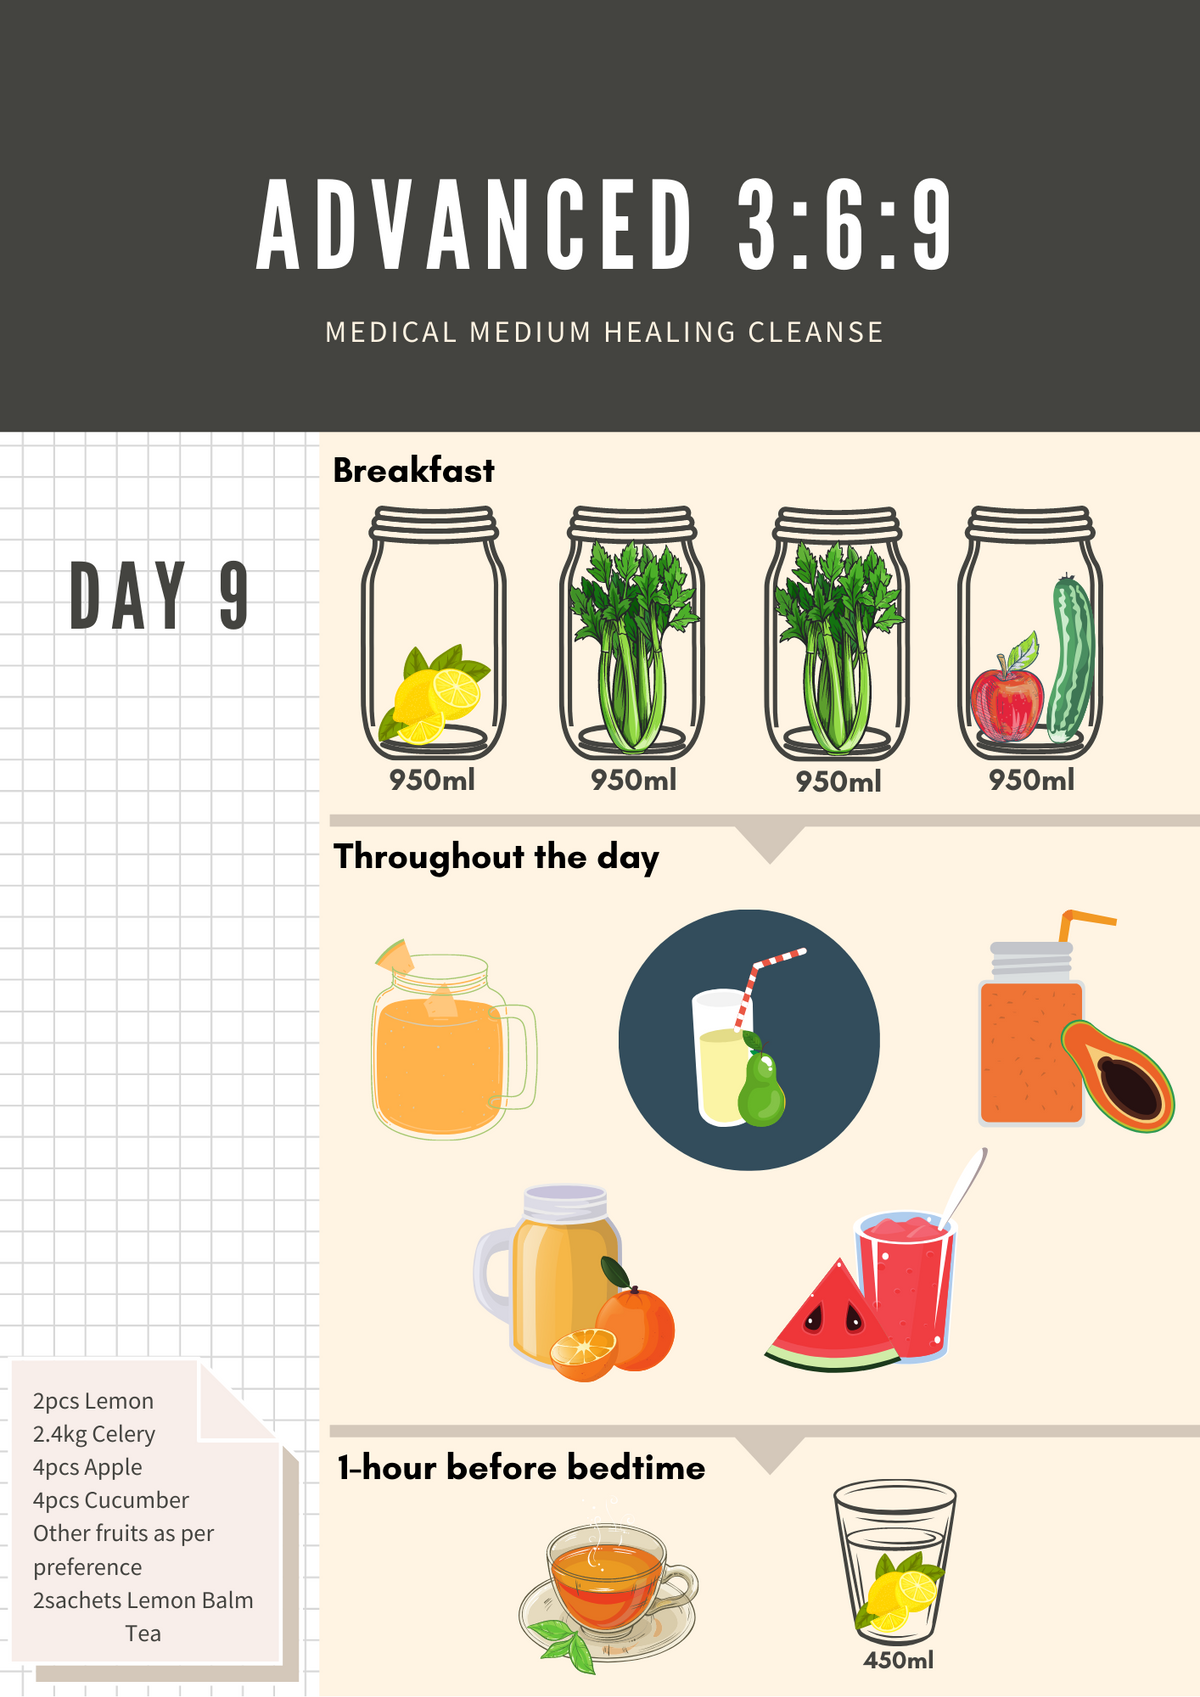 Advanced 3:6:9 Cleanse (Day 9)